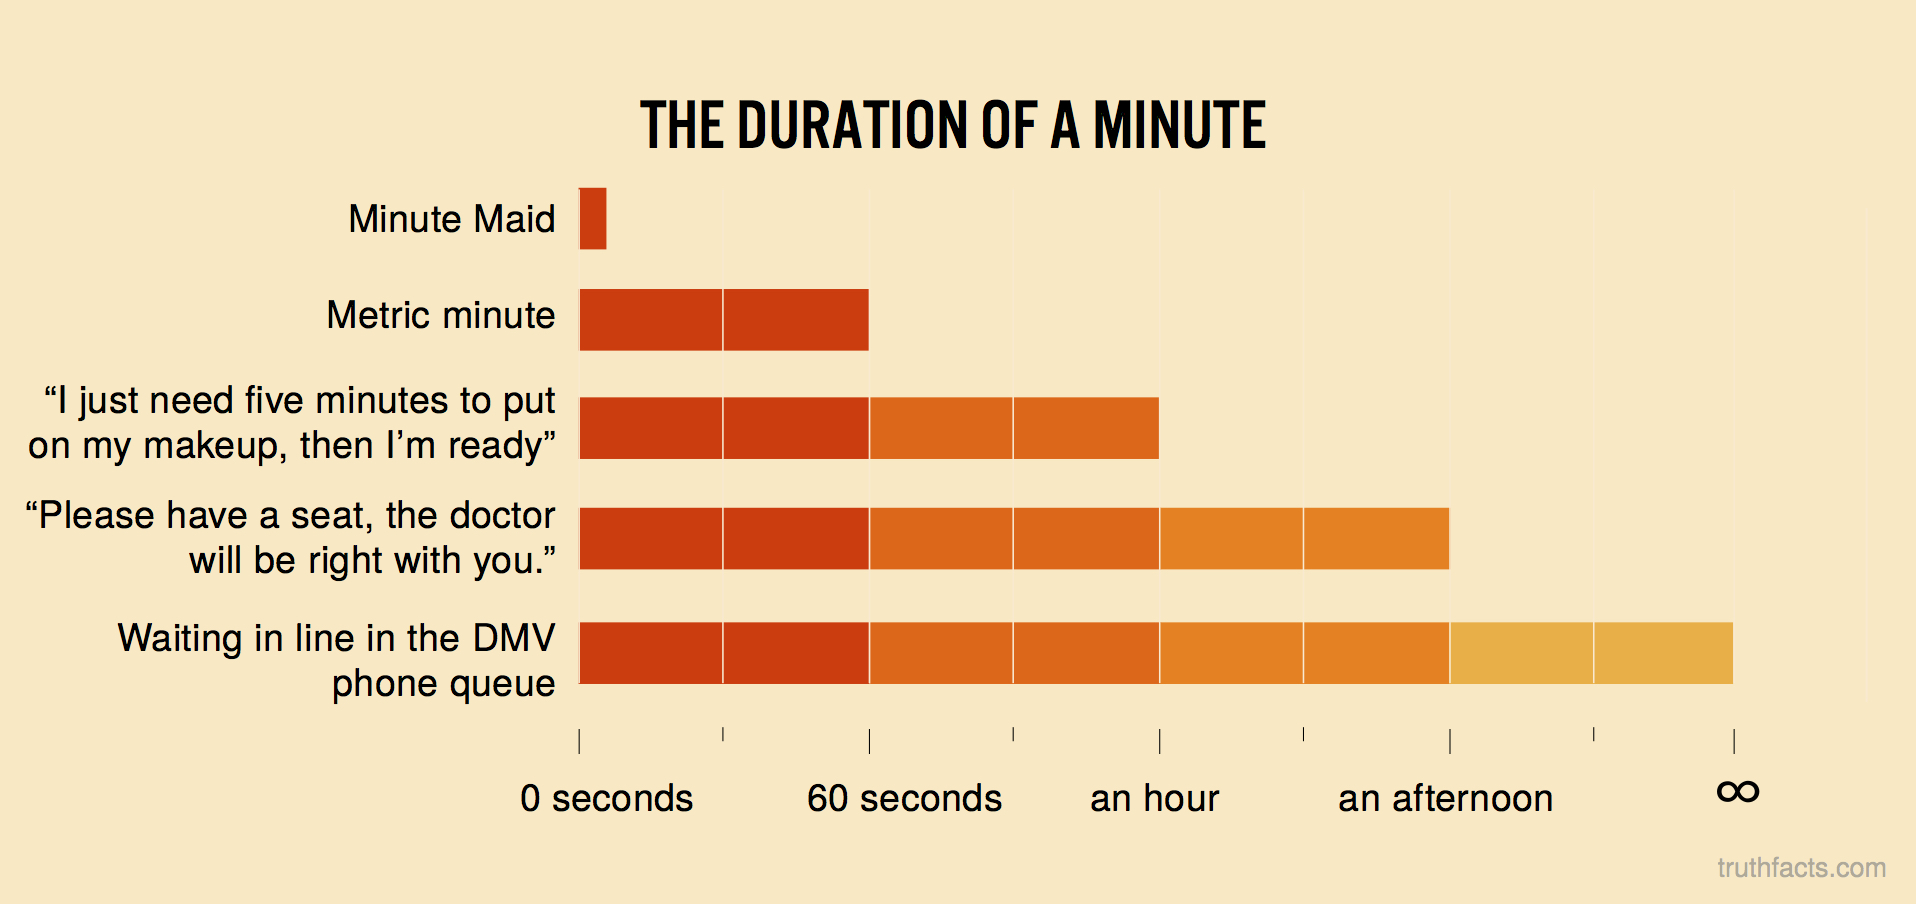 The duration of a minute